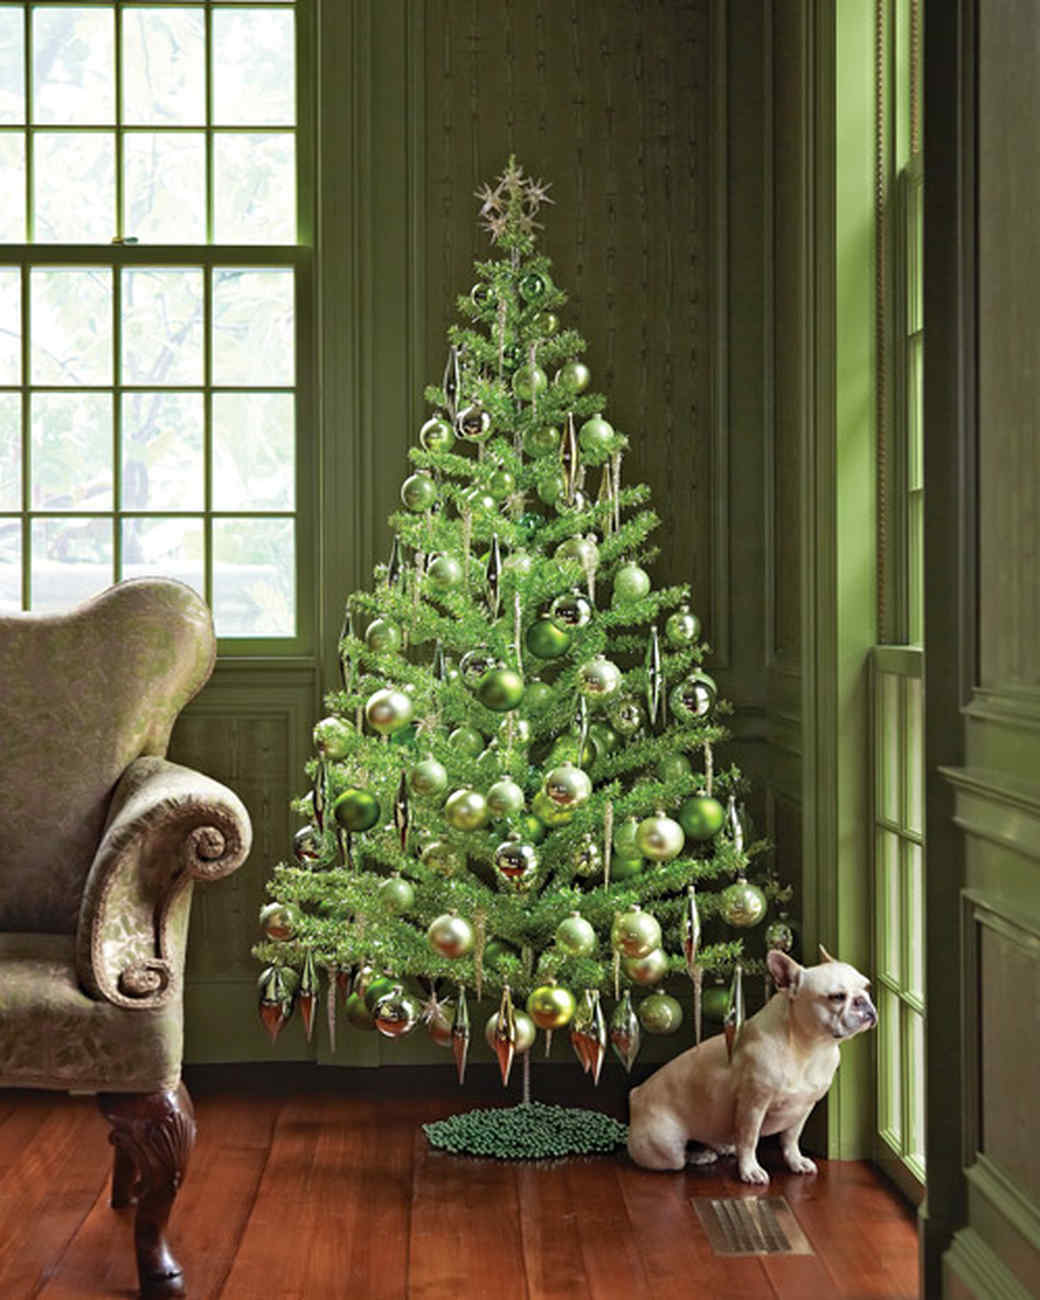 marthas holiday decorating ideas martha stewart